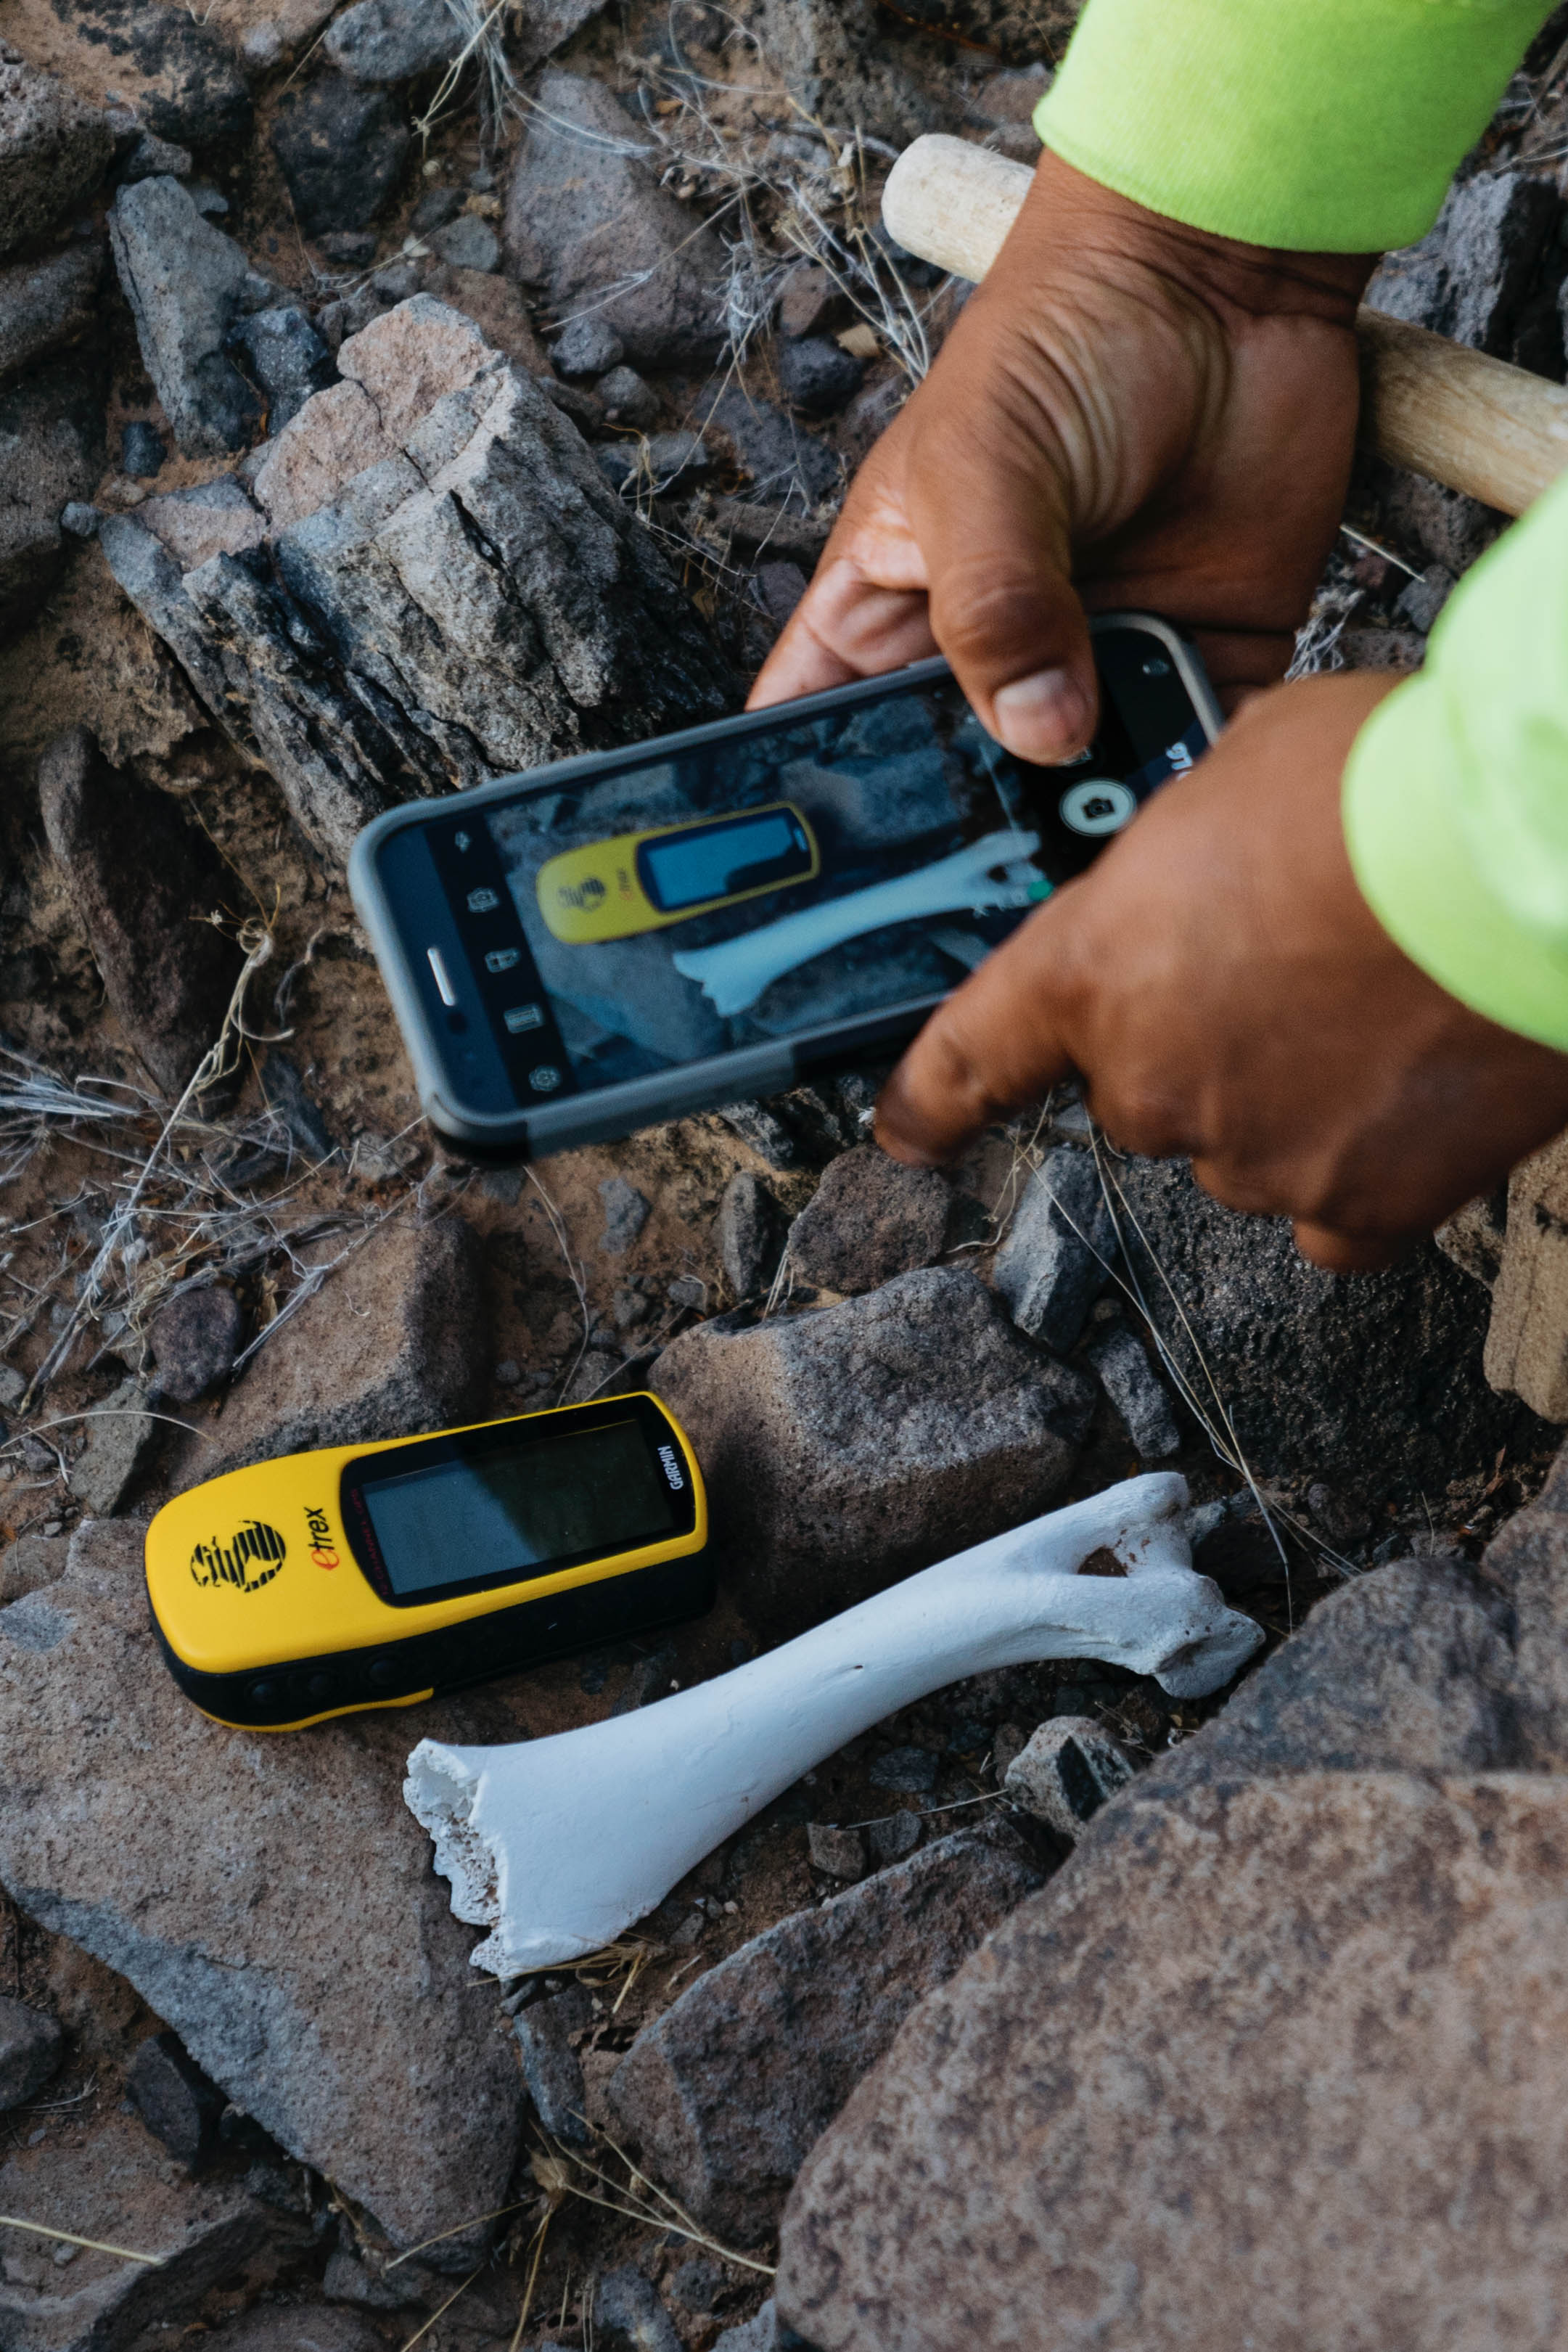 An Aguilas Del Desierto volunteer photographs GPS coordinates of an unidentified bone located in the Sonoran Desert. Because human remains can be the scene of a crime, volunteers photograph and document the locations of any remains and report the information to Border Patrol.